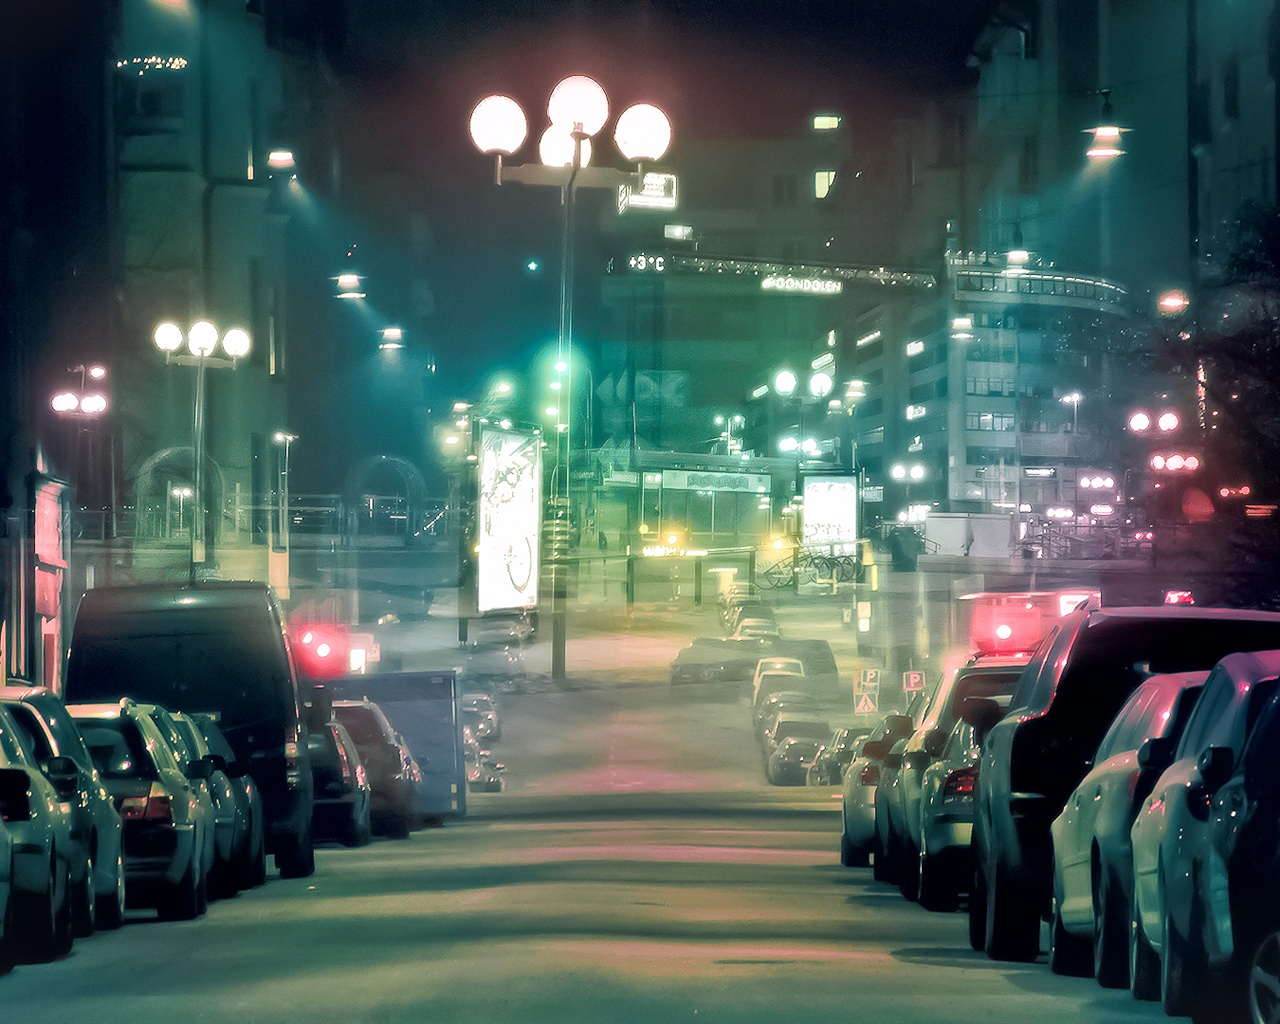 Popular Wallpaper Night City Street - Streets-of-the-city-at-night-crowded-road-vehicles-street-lights_1280x1024  Pic.jpg